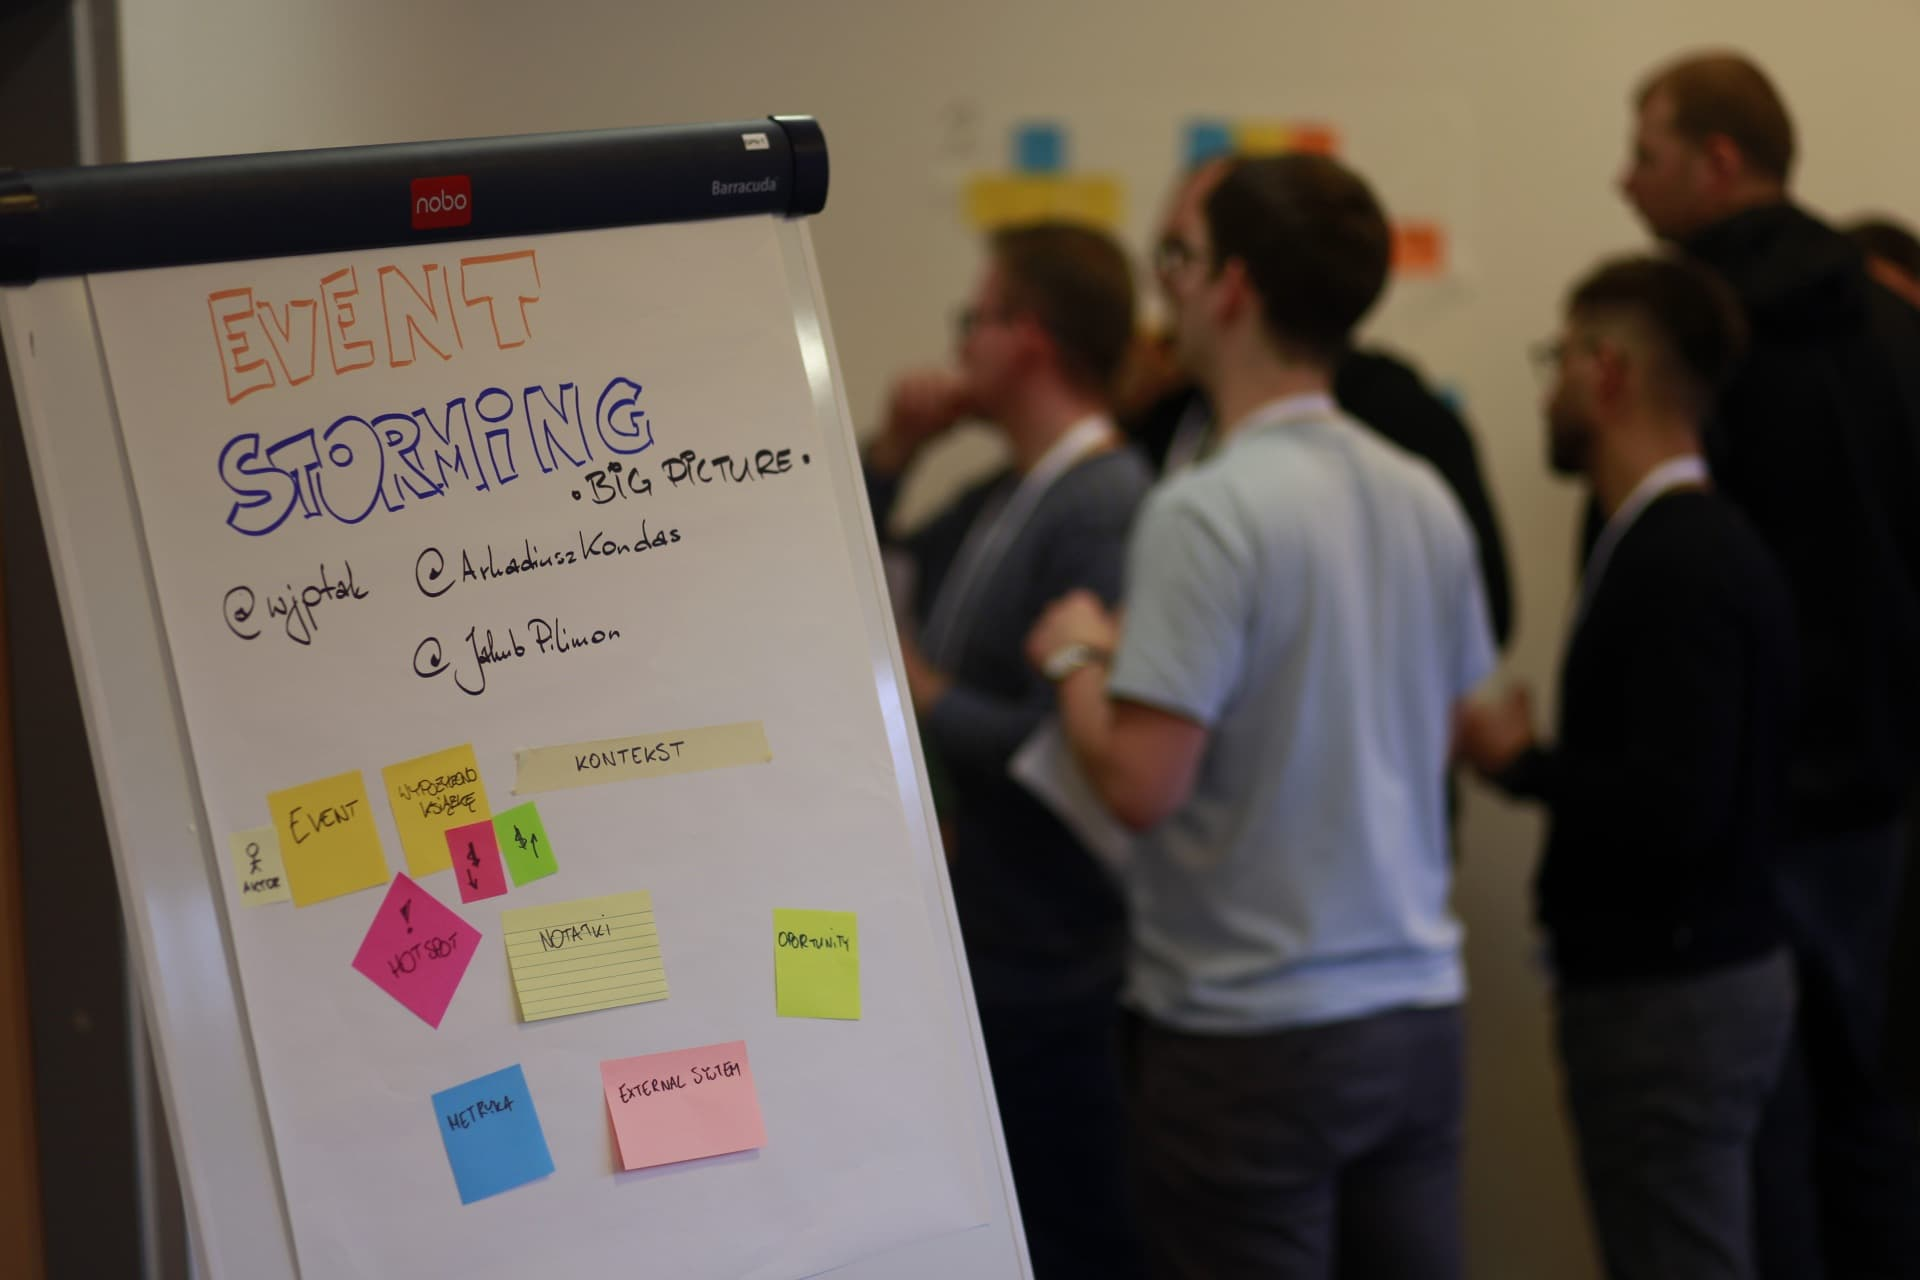 Event Storming Big Picture